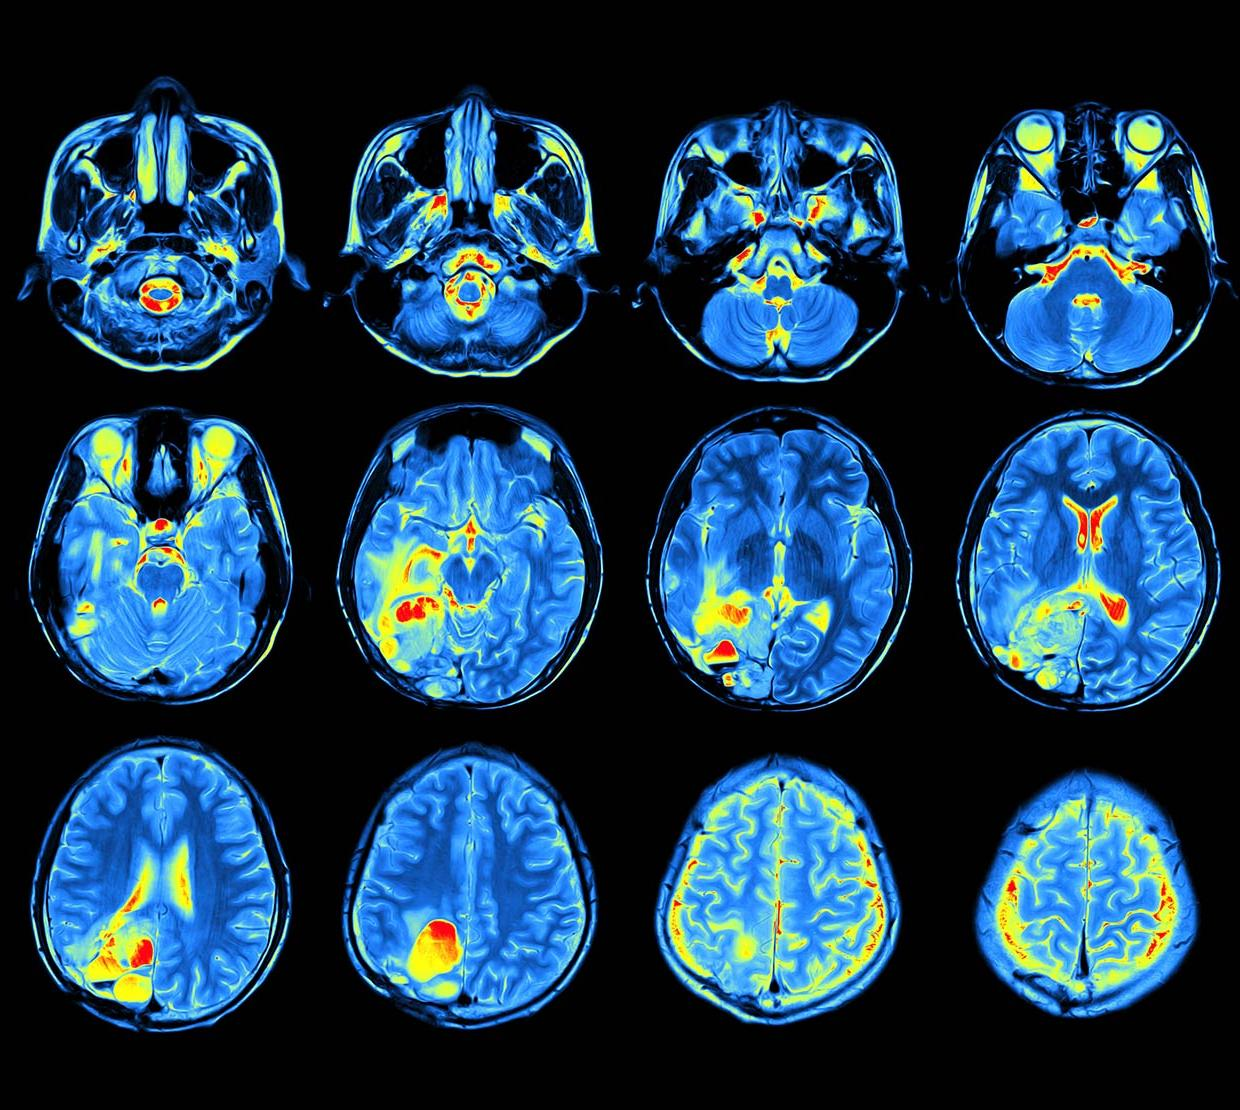 scan of blue and green human brain patterns above black backdrop